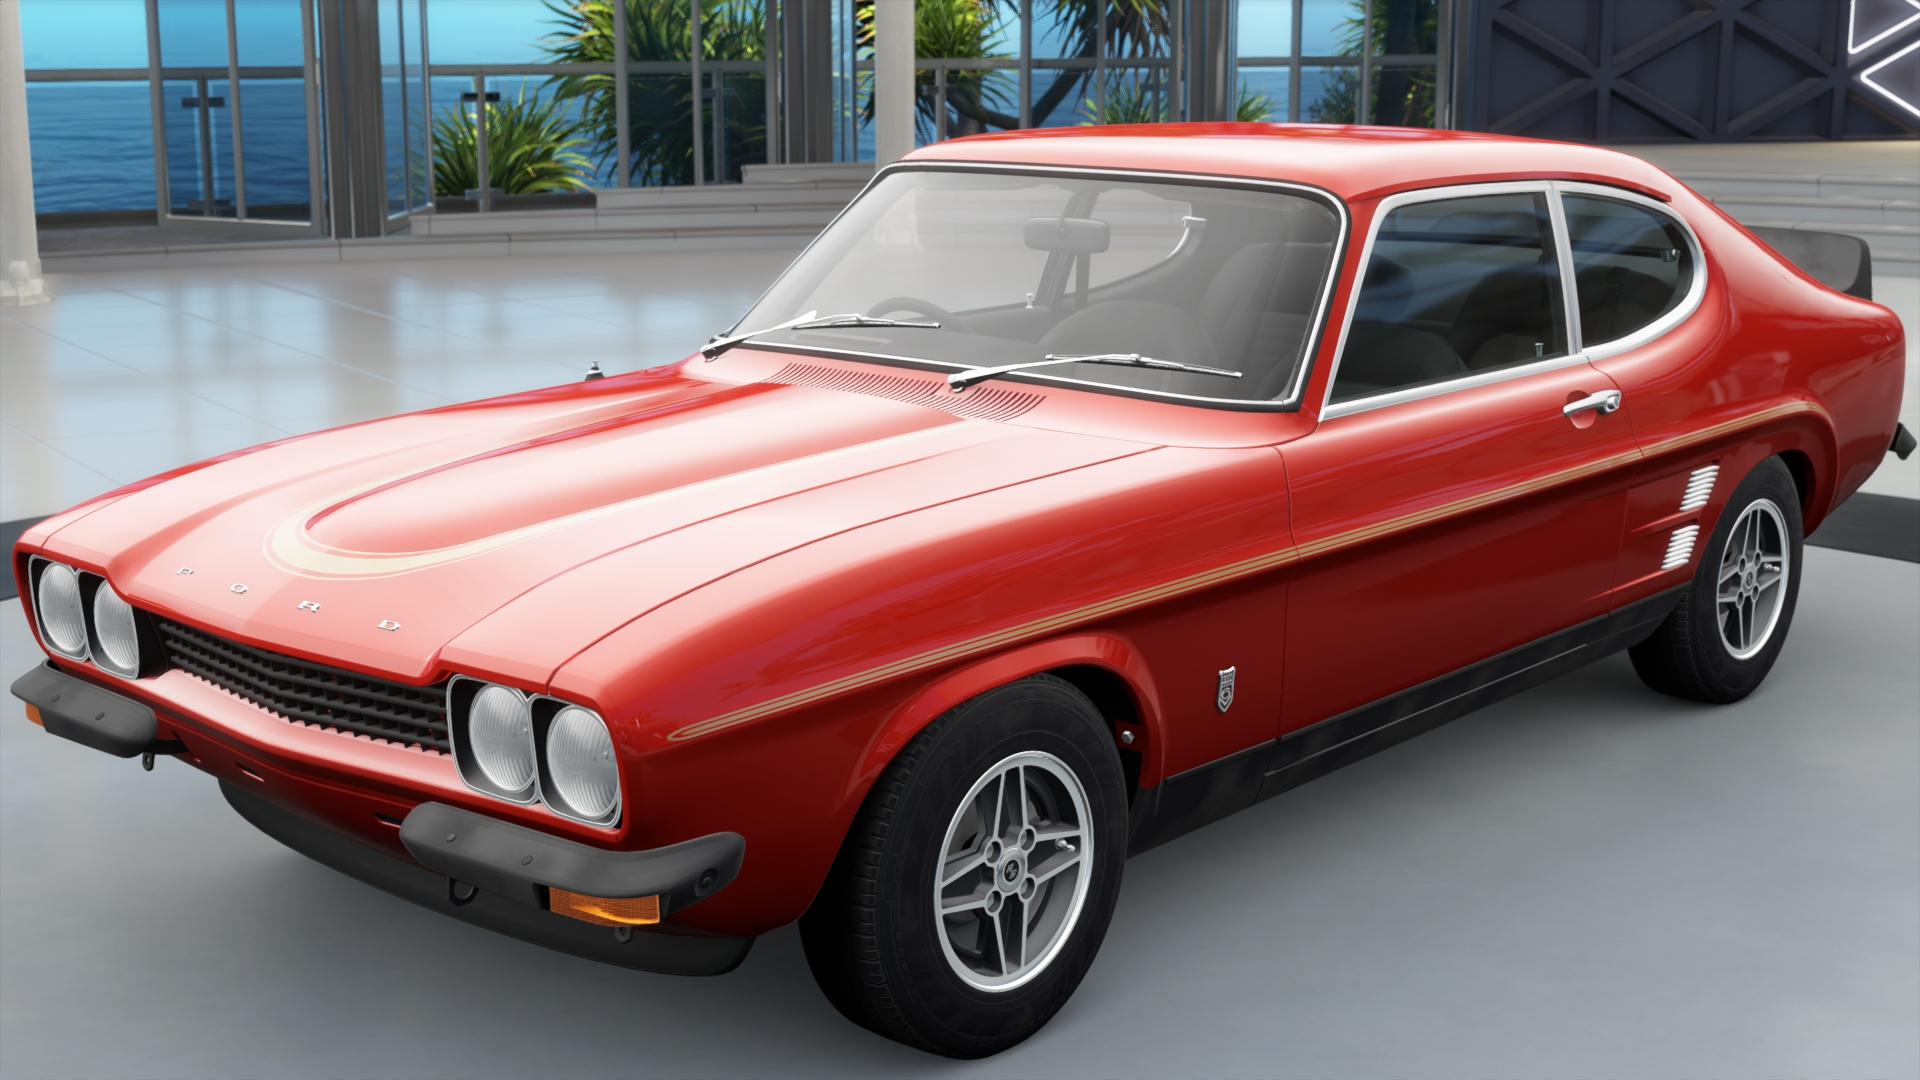 ford capri rs3100 forza motorsport wiki fandom powered by wikia. Black Bedroom Furniture Sets. Home Design Ideas